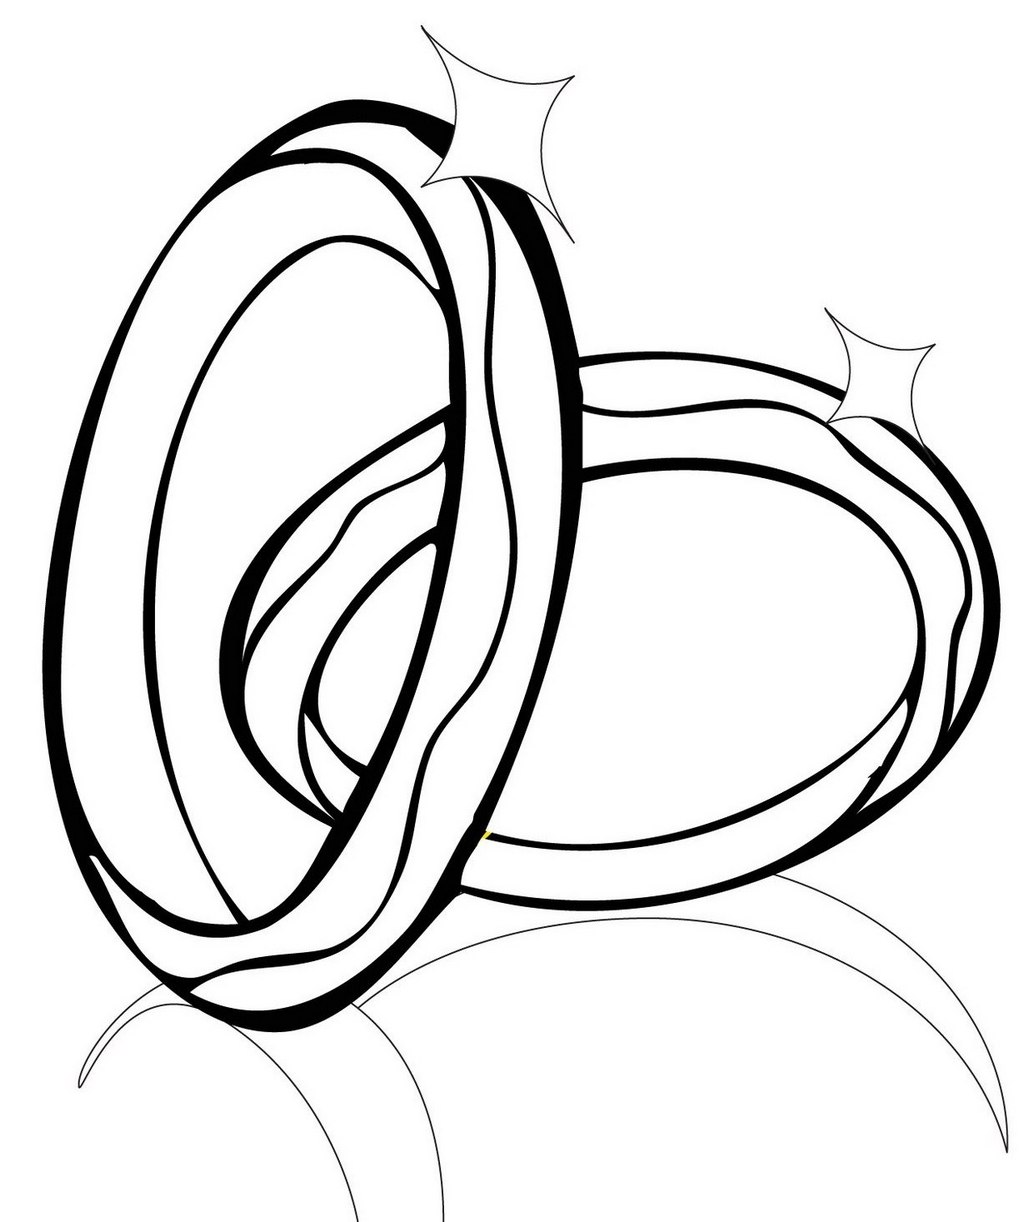 awesome wedding rings coloring sheet